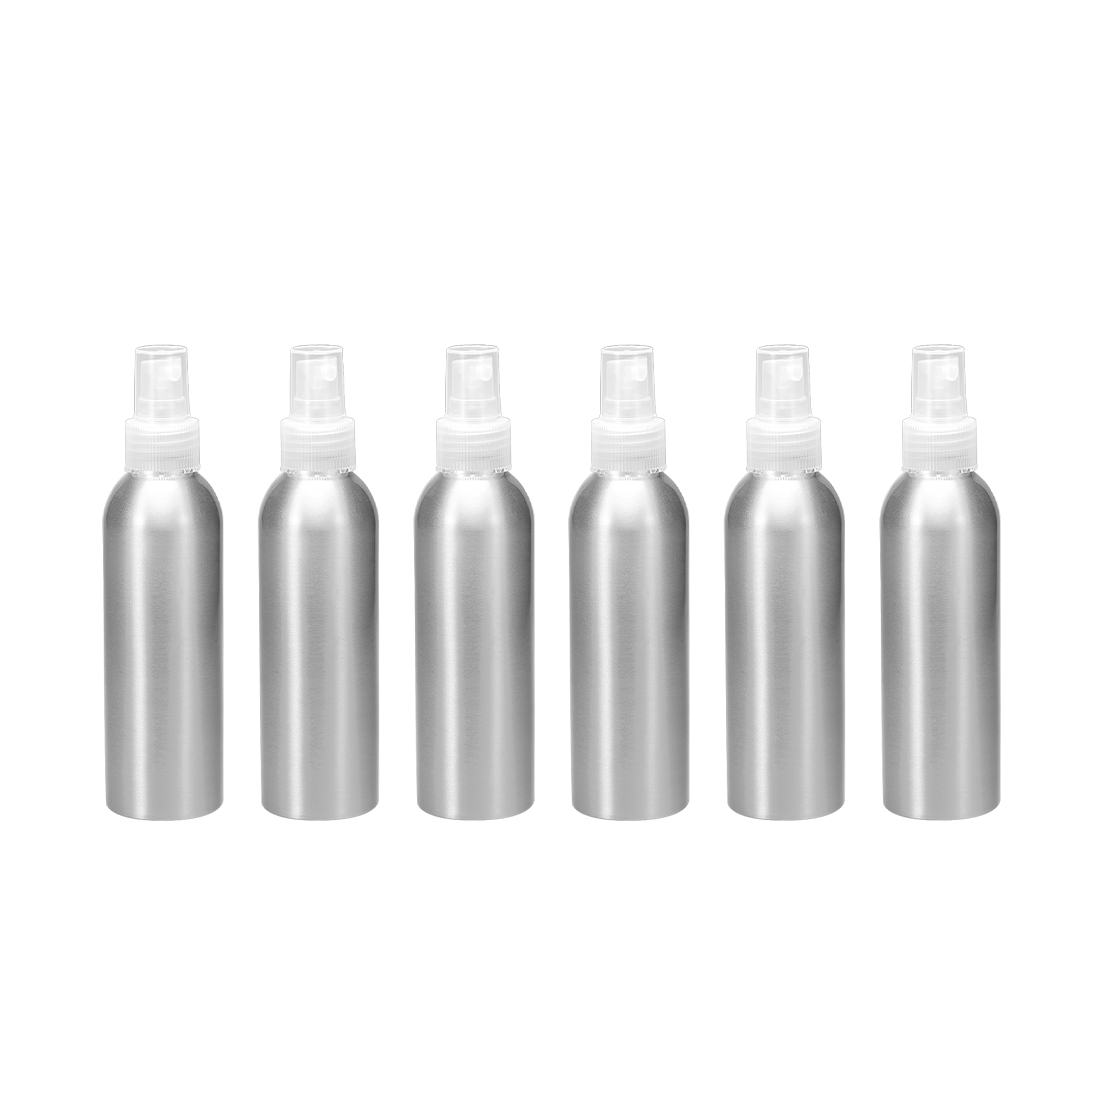 6pcs 5oz/150ml Aluminium Spray Bottle with Clear Sprayer, Refillable Container